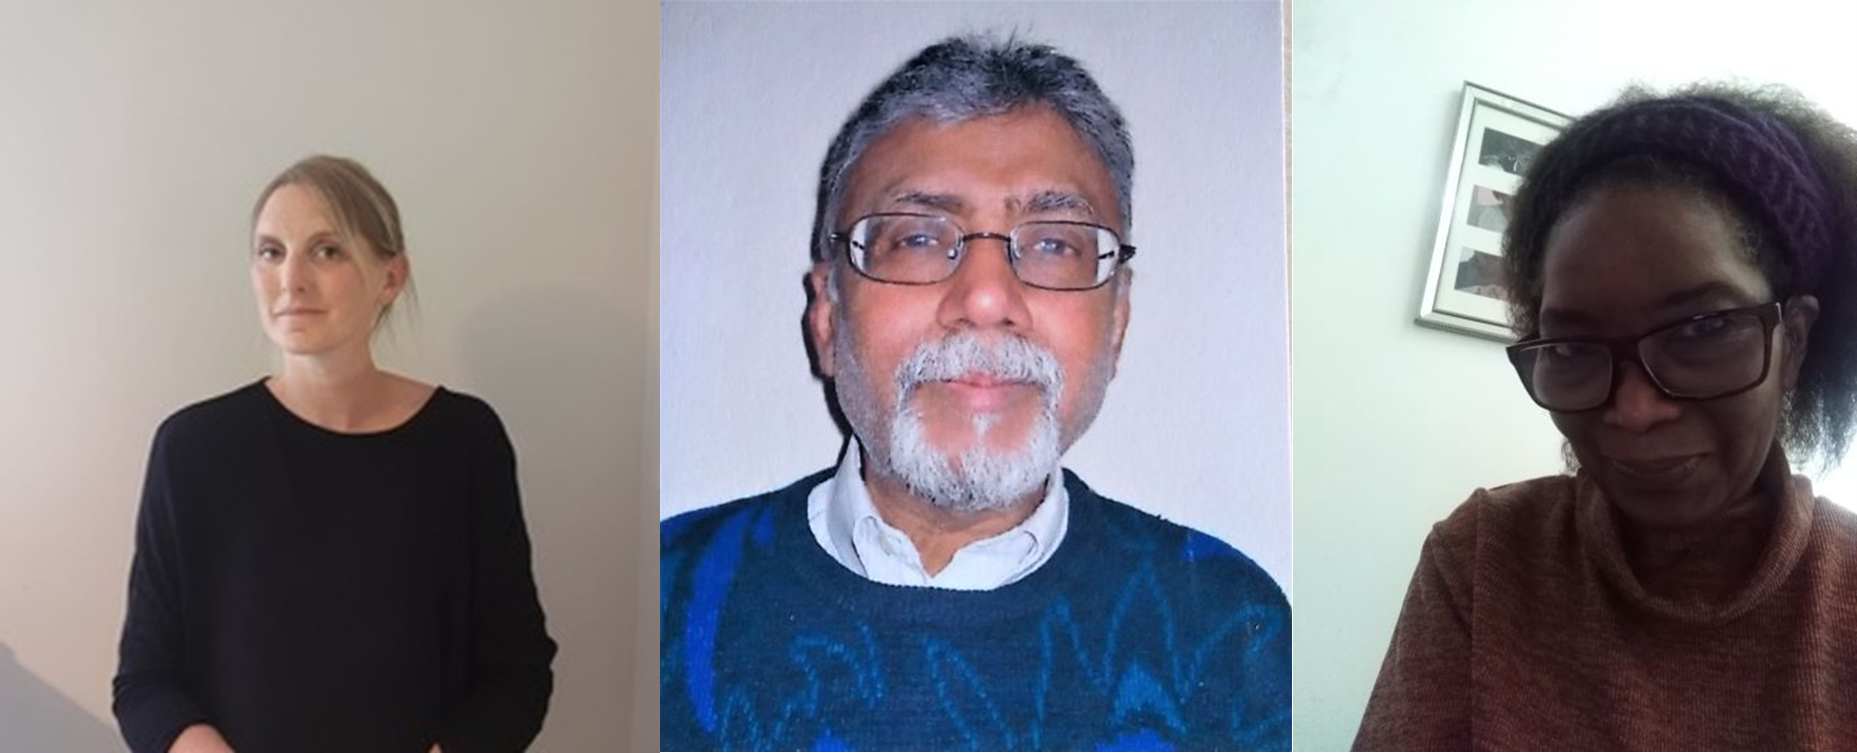 3 individual photos, one of Clare (a blonde white lady wearing a black top), one of Sudhir (an Indian older gentleman with glasses grey/white hair and beard, and a blue jumper) and Dawn (a black lady with glasses, a purple headband and black hair, wearing an orange top).